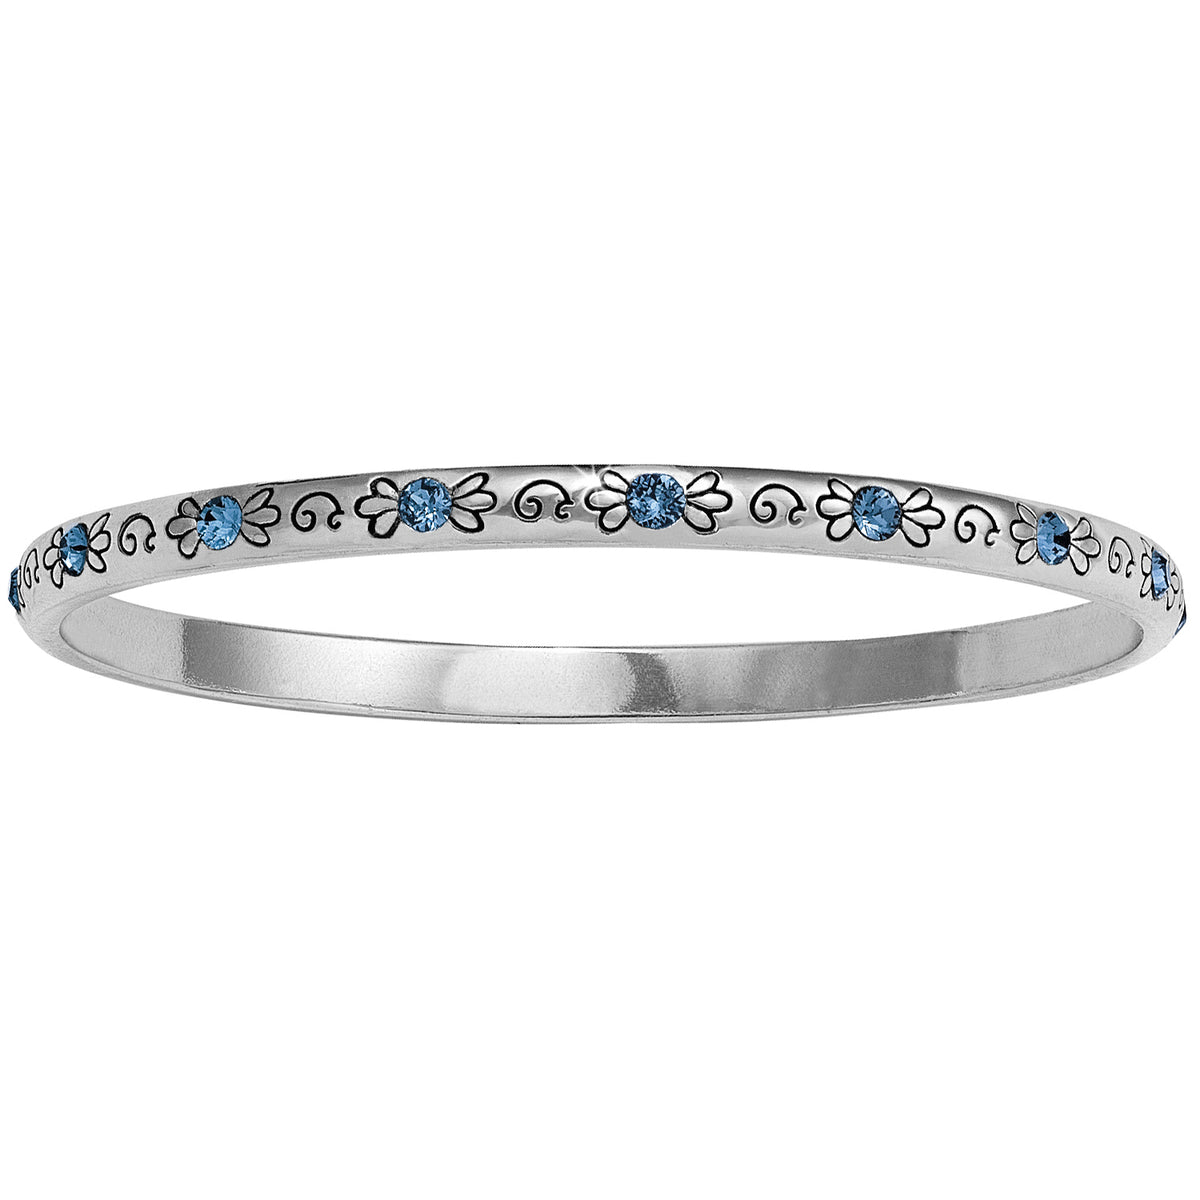 Casablanca Blues Bangle